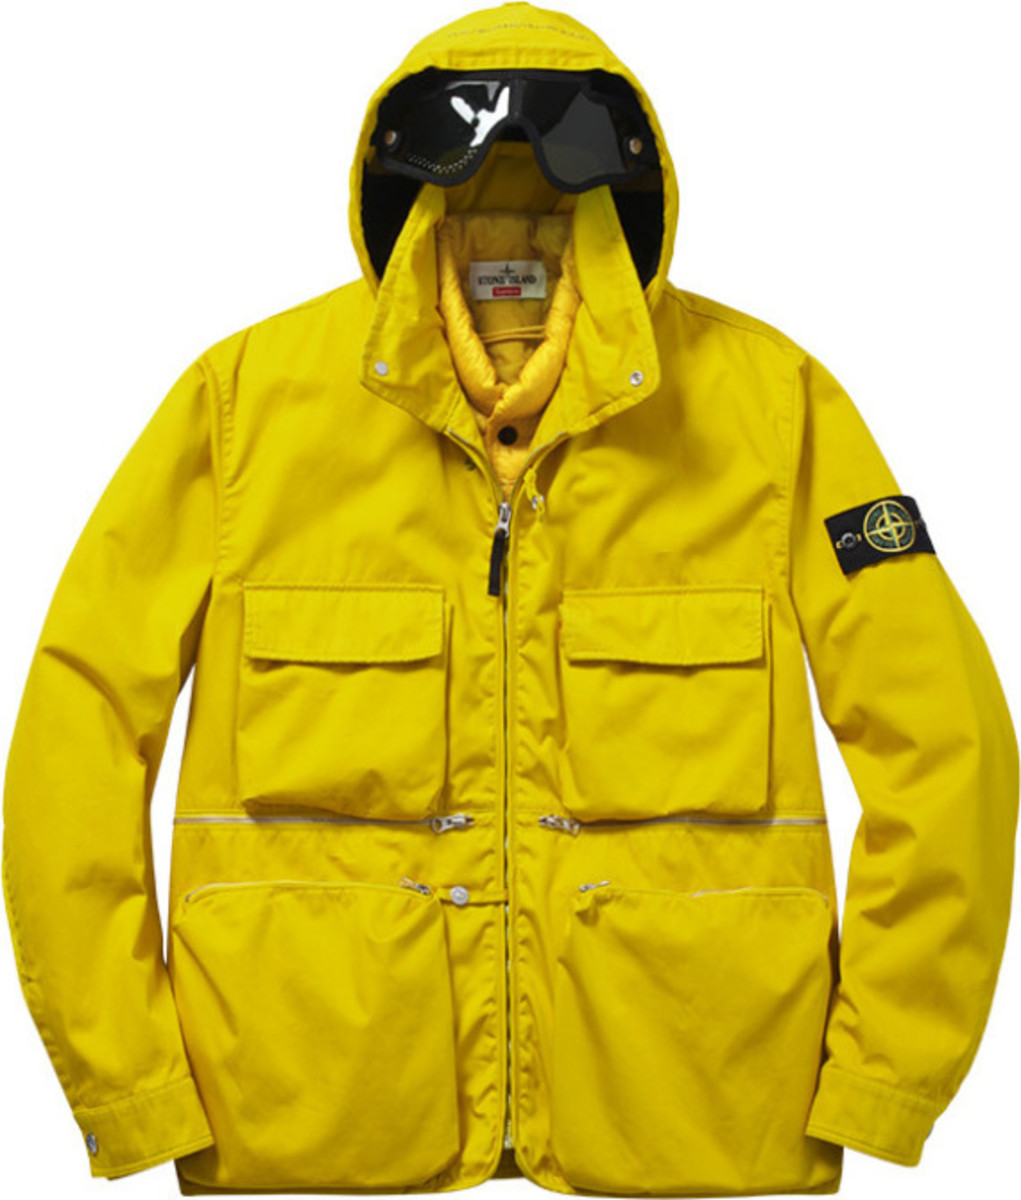 Supreme x Stone Island – Fall/Winter 2014 Collection | Available Now - 5